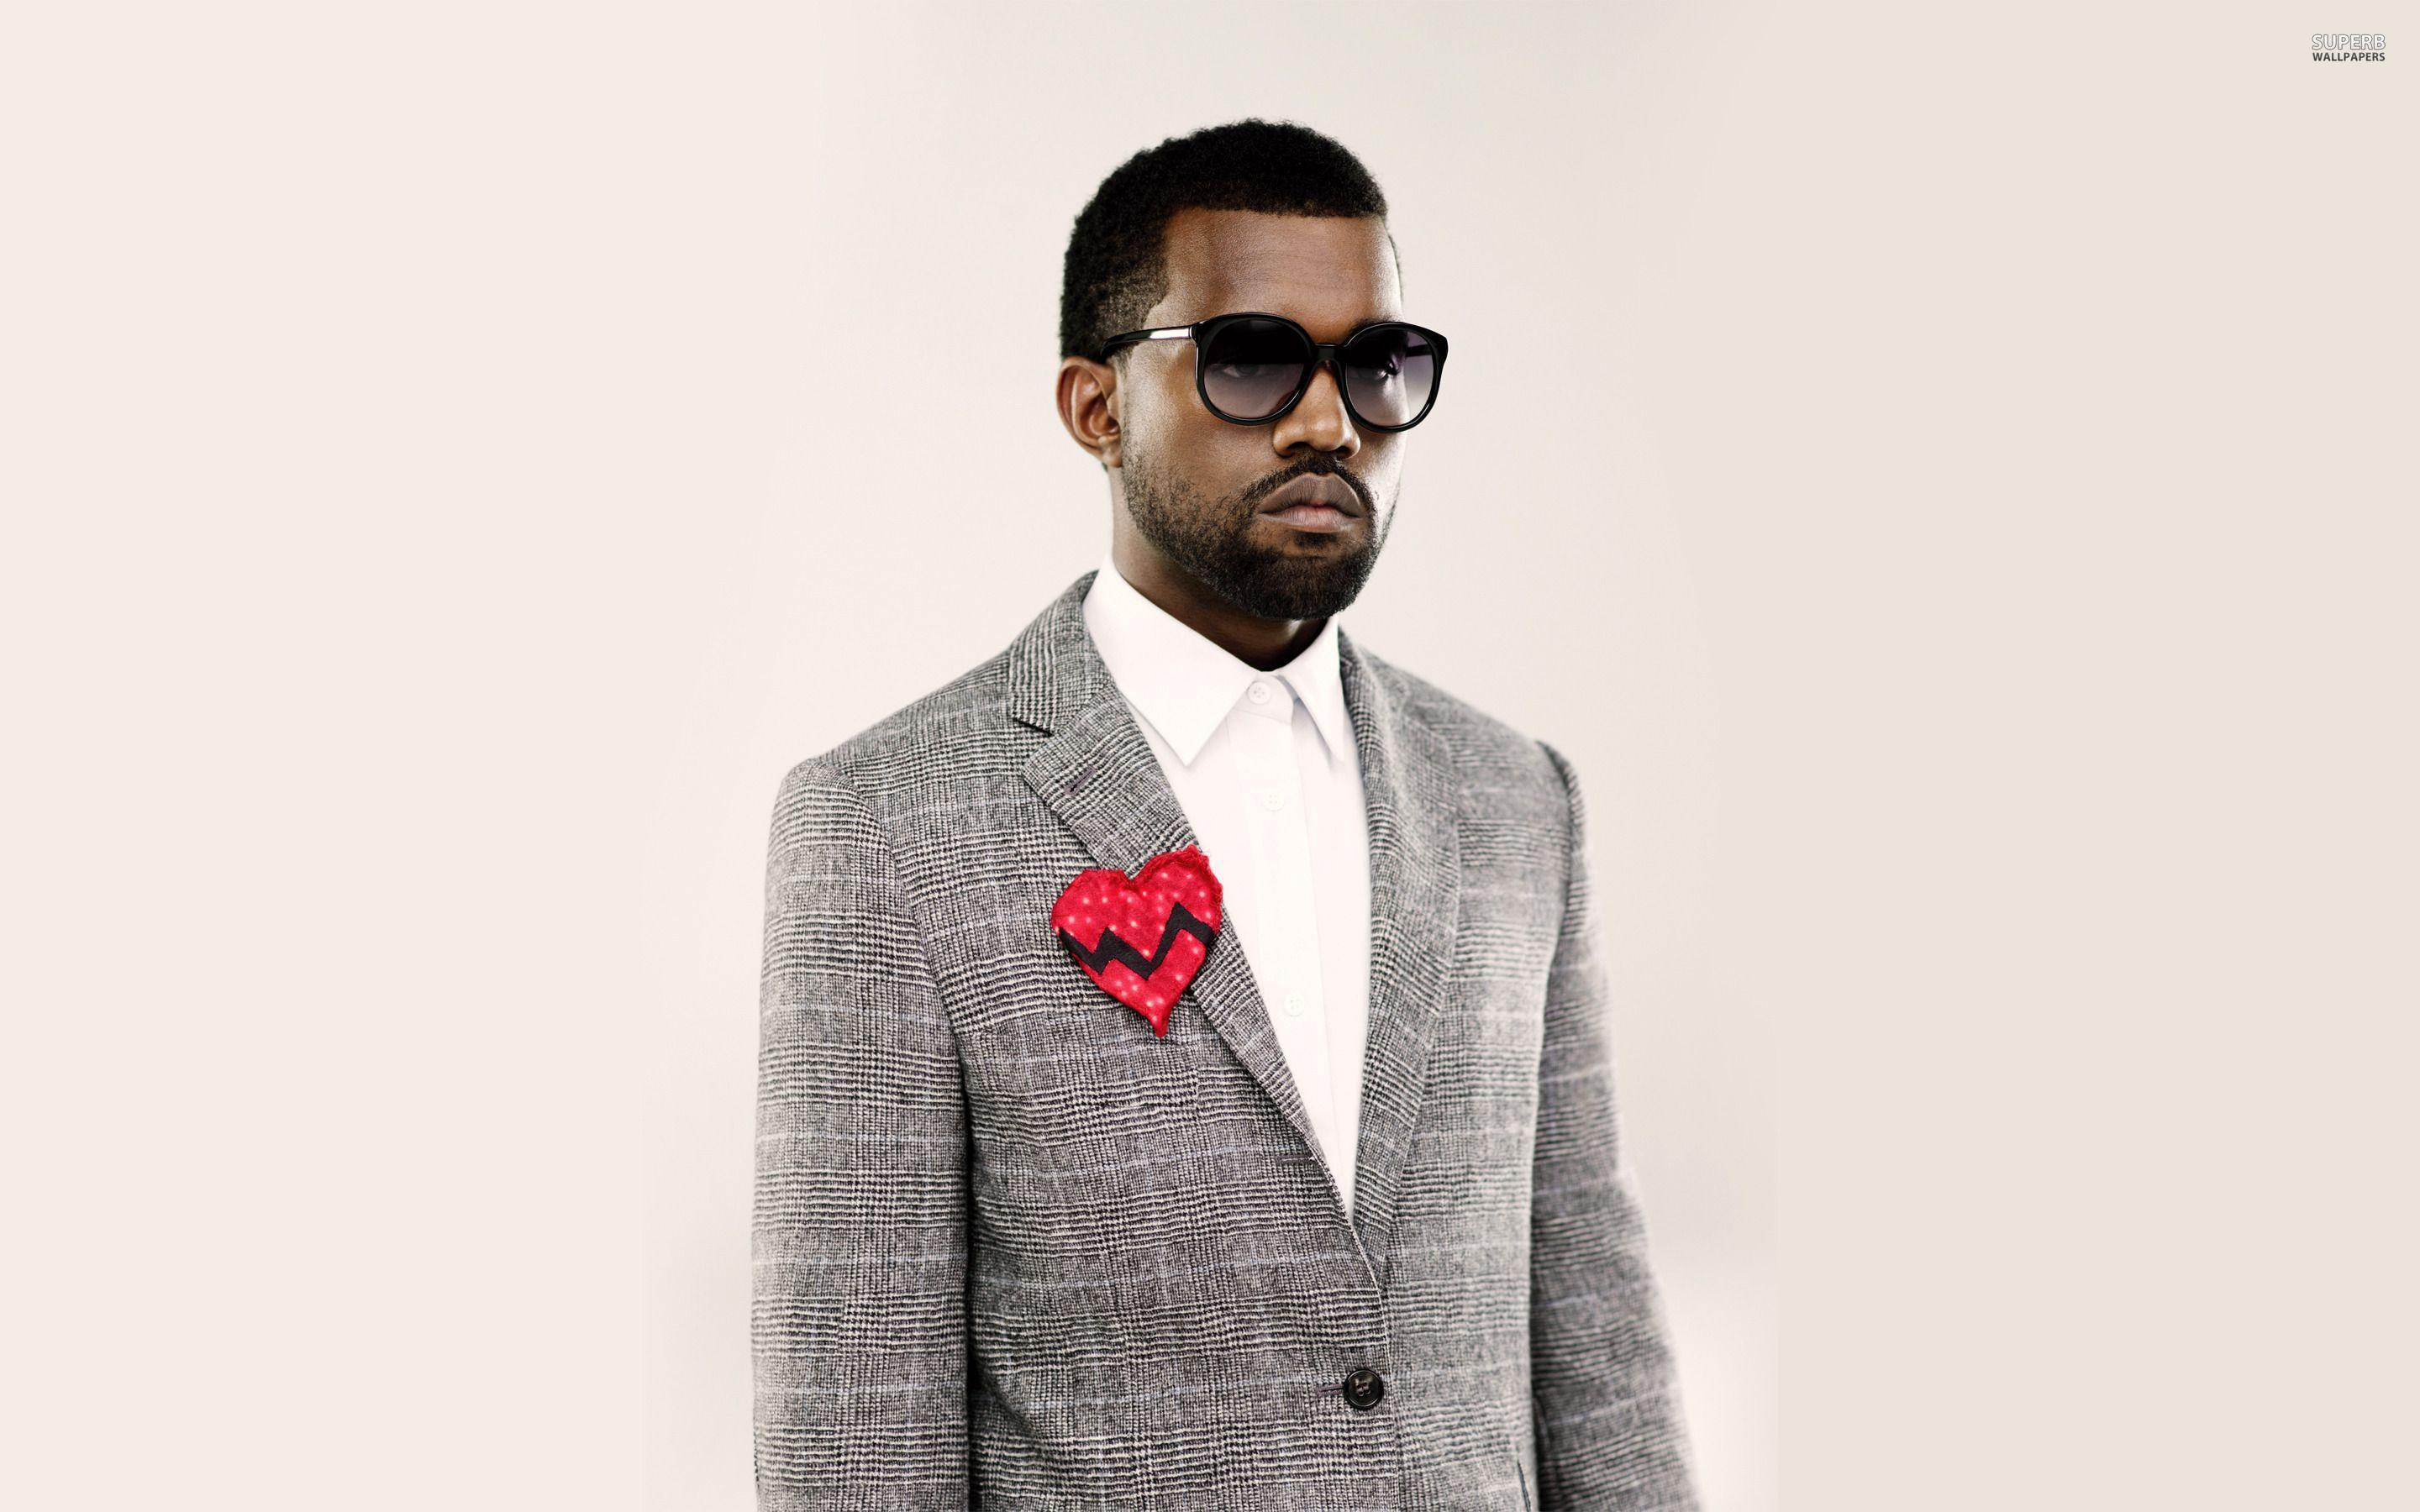 kanye west - photo #27